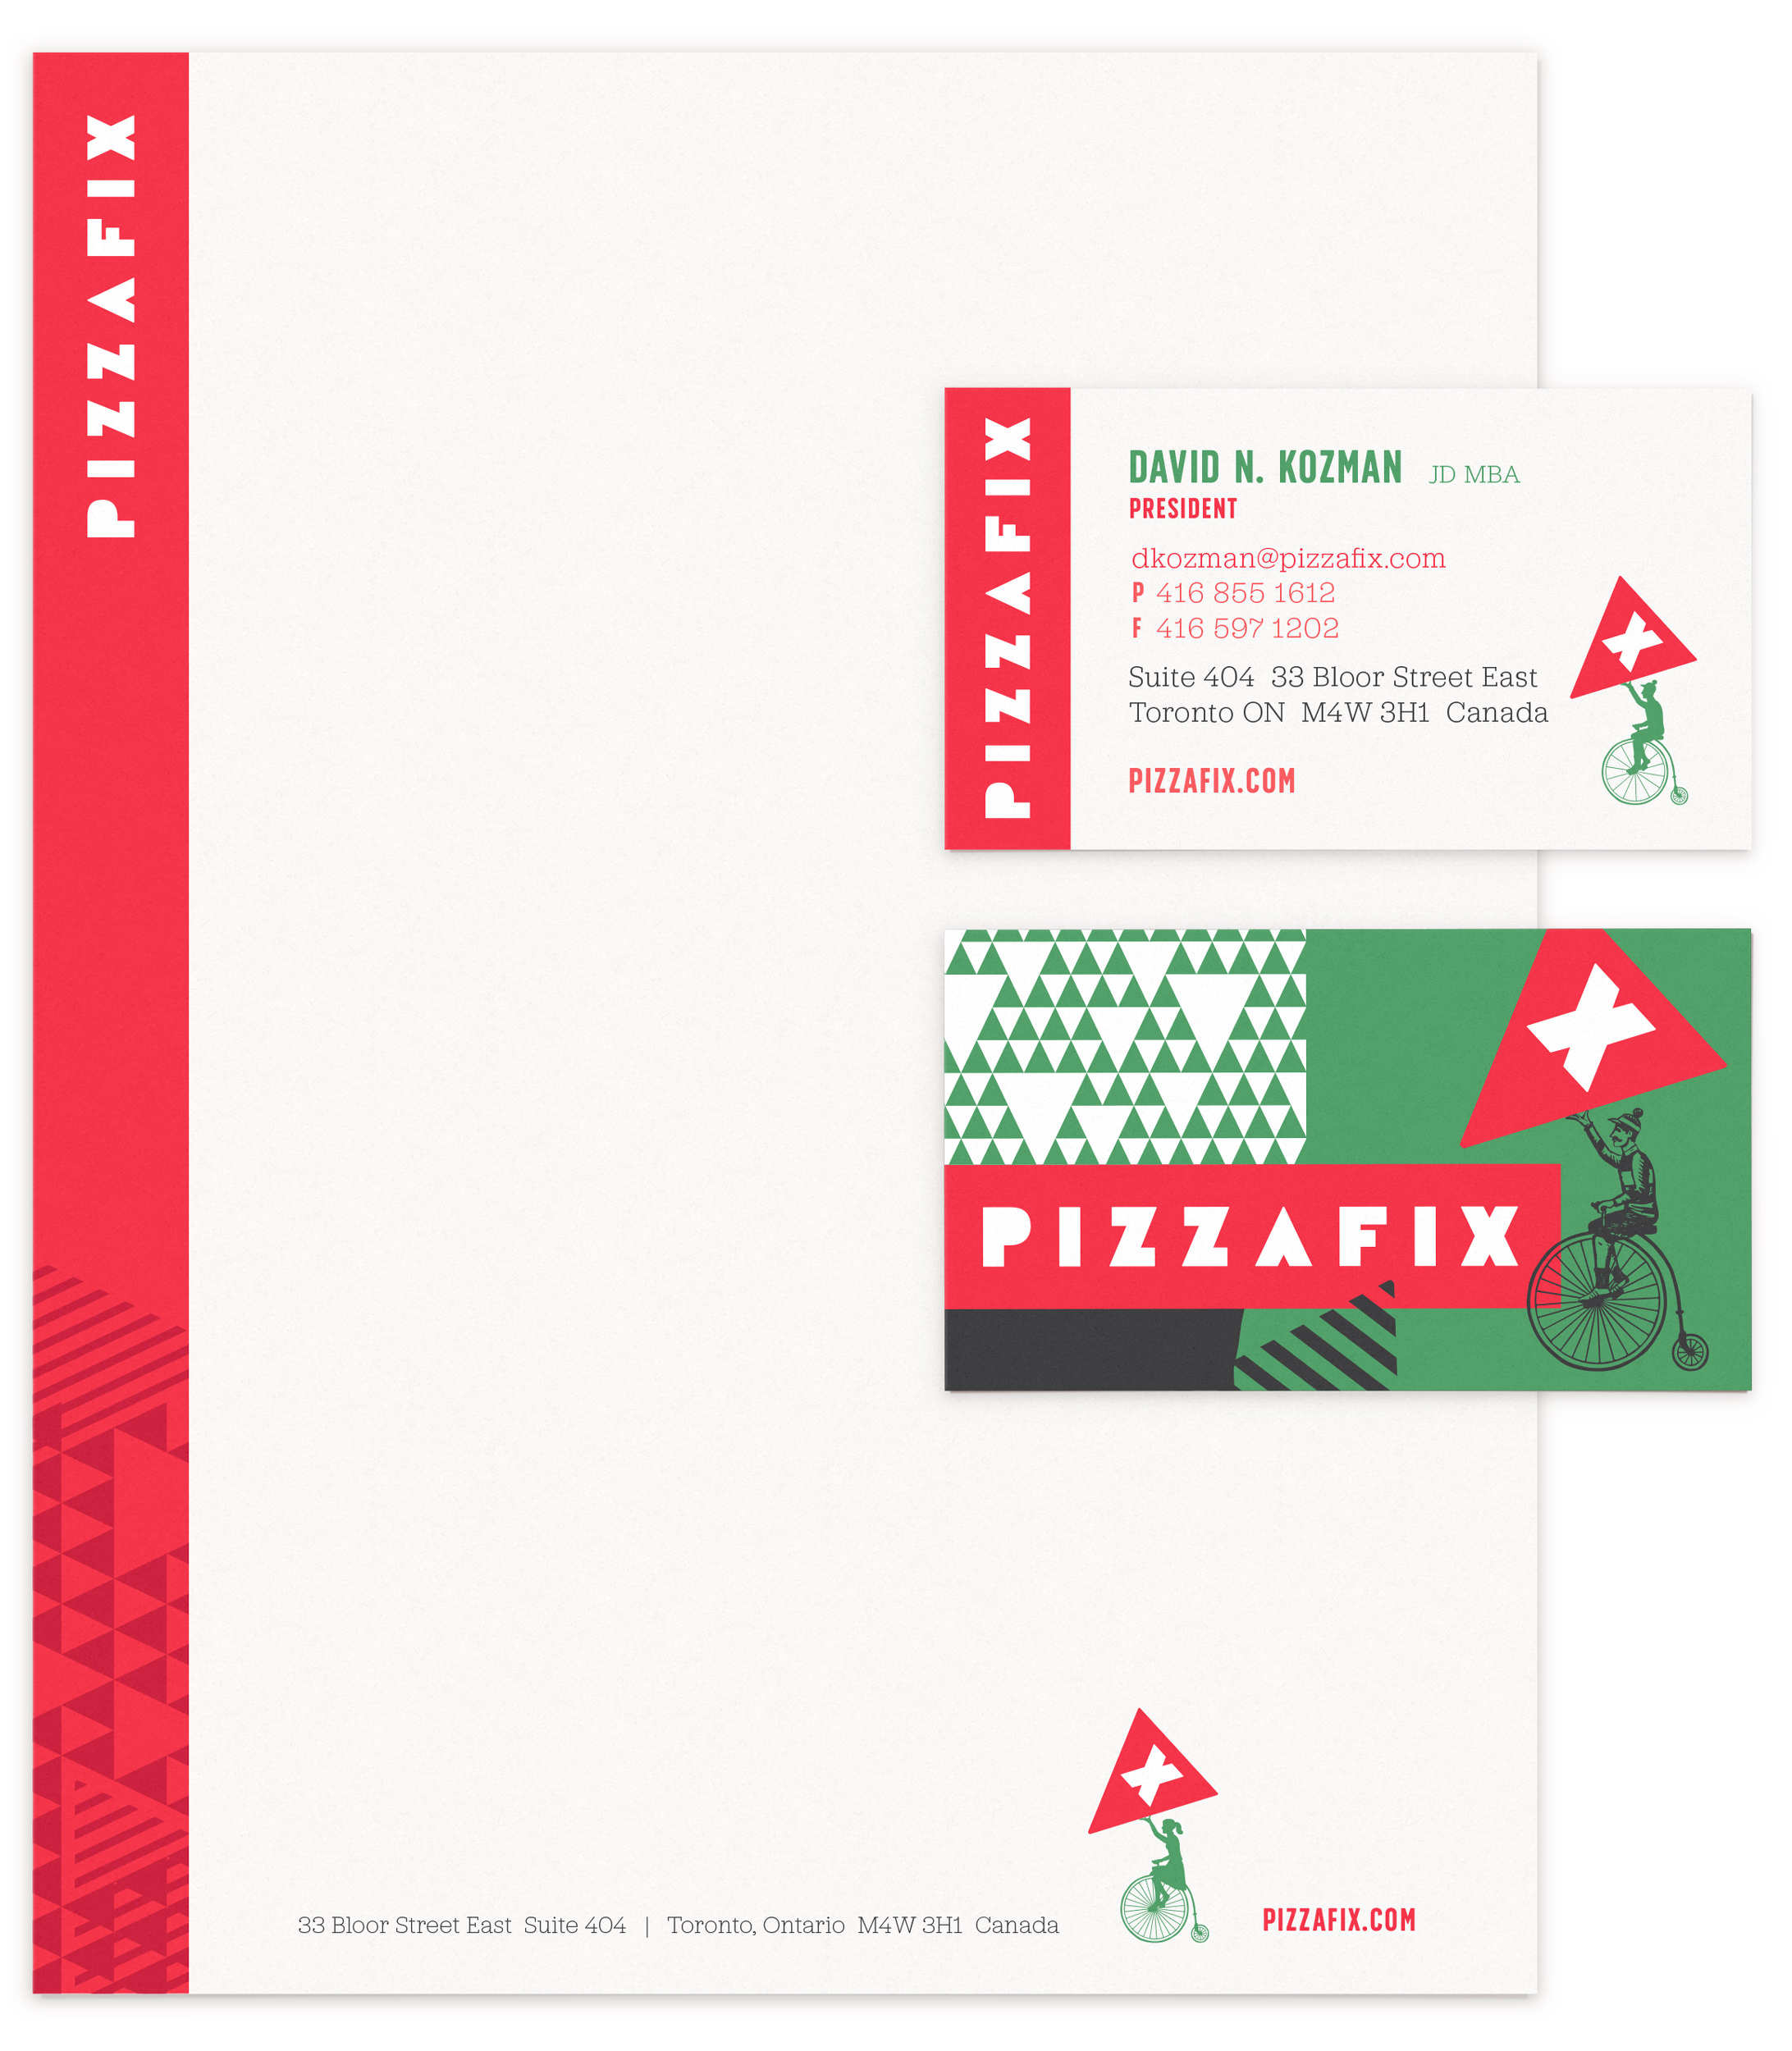 Chad Roberts Design Ltd. Pizzafix Stationery Print Collateral Business Card Letterhead Design